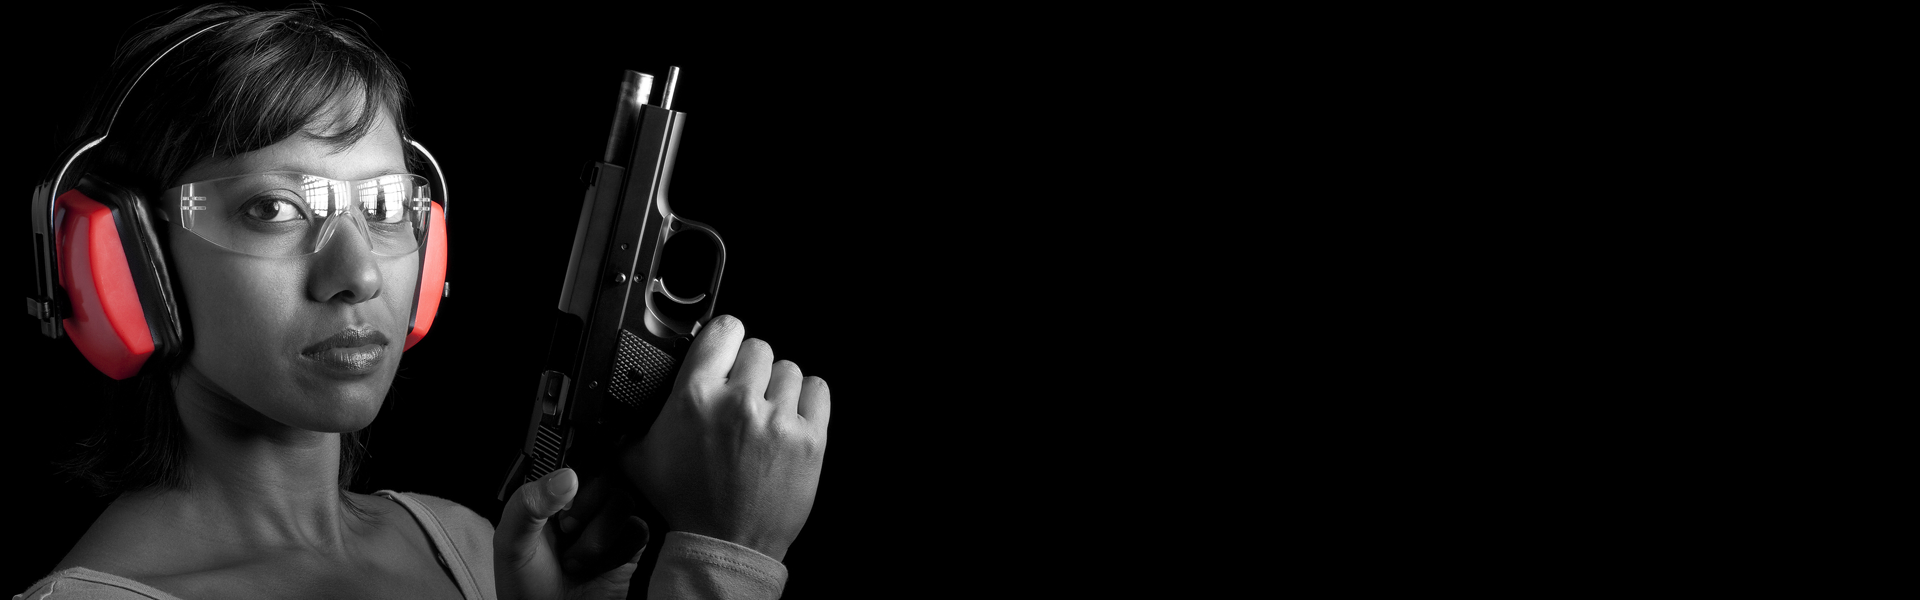 woman-with-gun.png